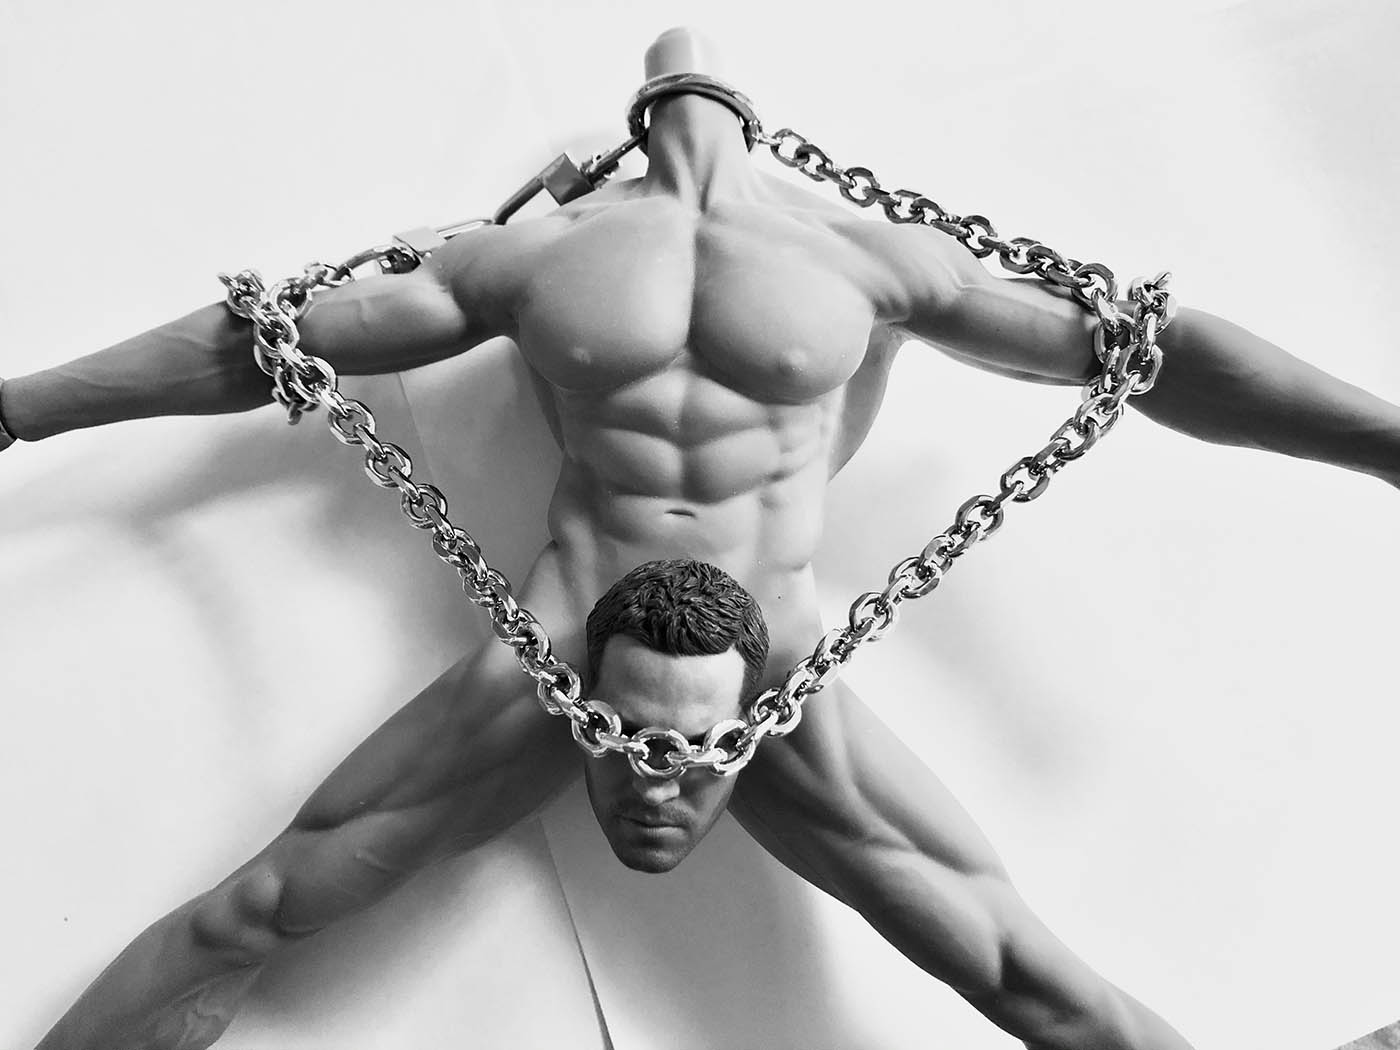 Black and white photo of nude male scultpure holding large chain.